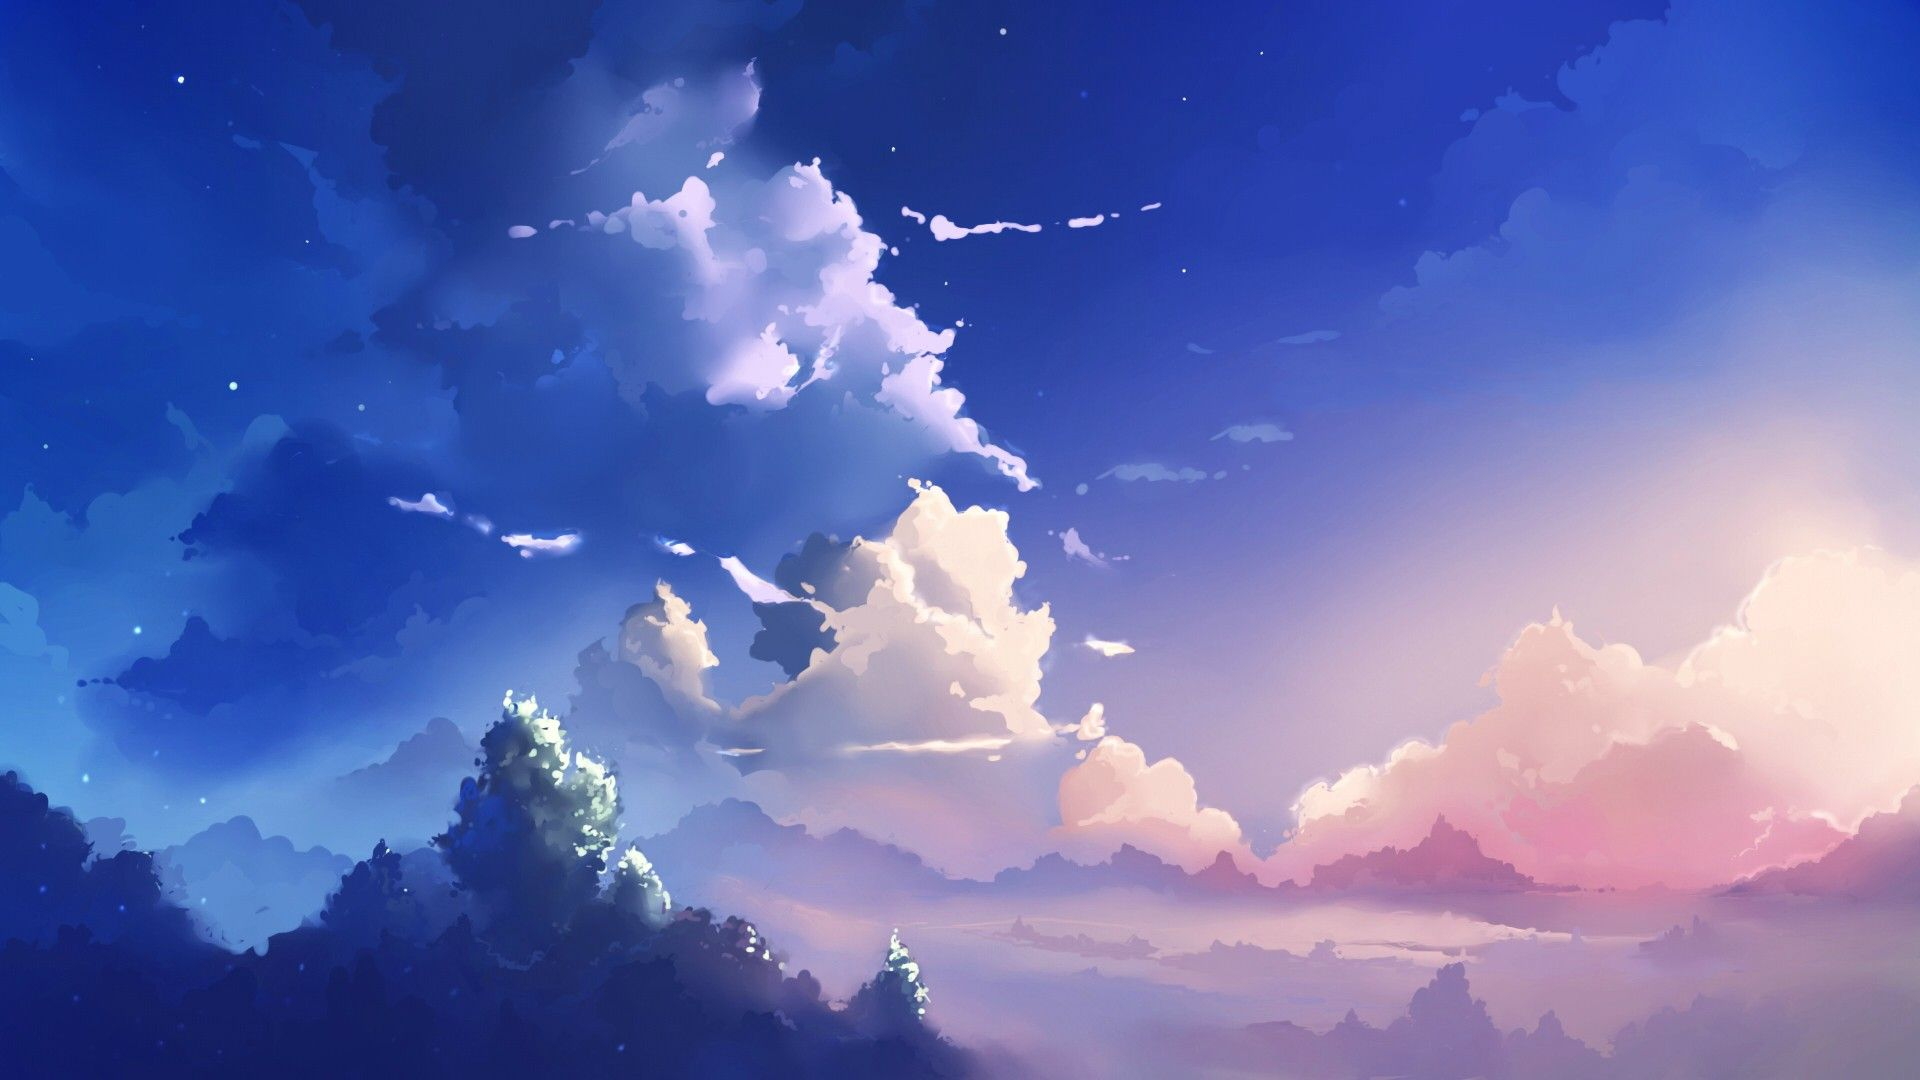 Anime Scenery Hd Wallpaper 1920x1080 Anime Backgrounds Wallpapers Scenery Wallpaper Anime Scenery